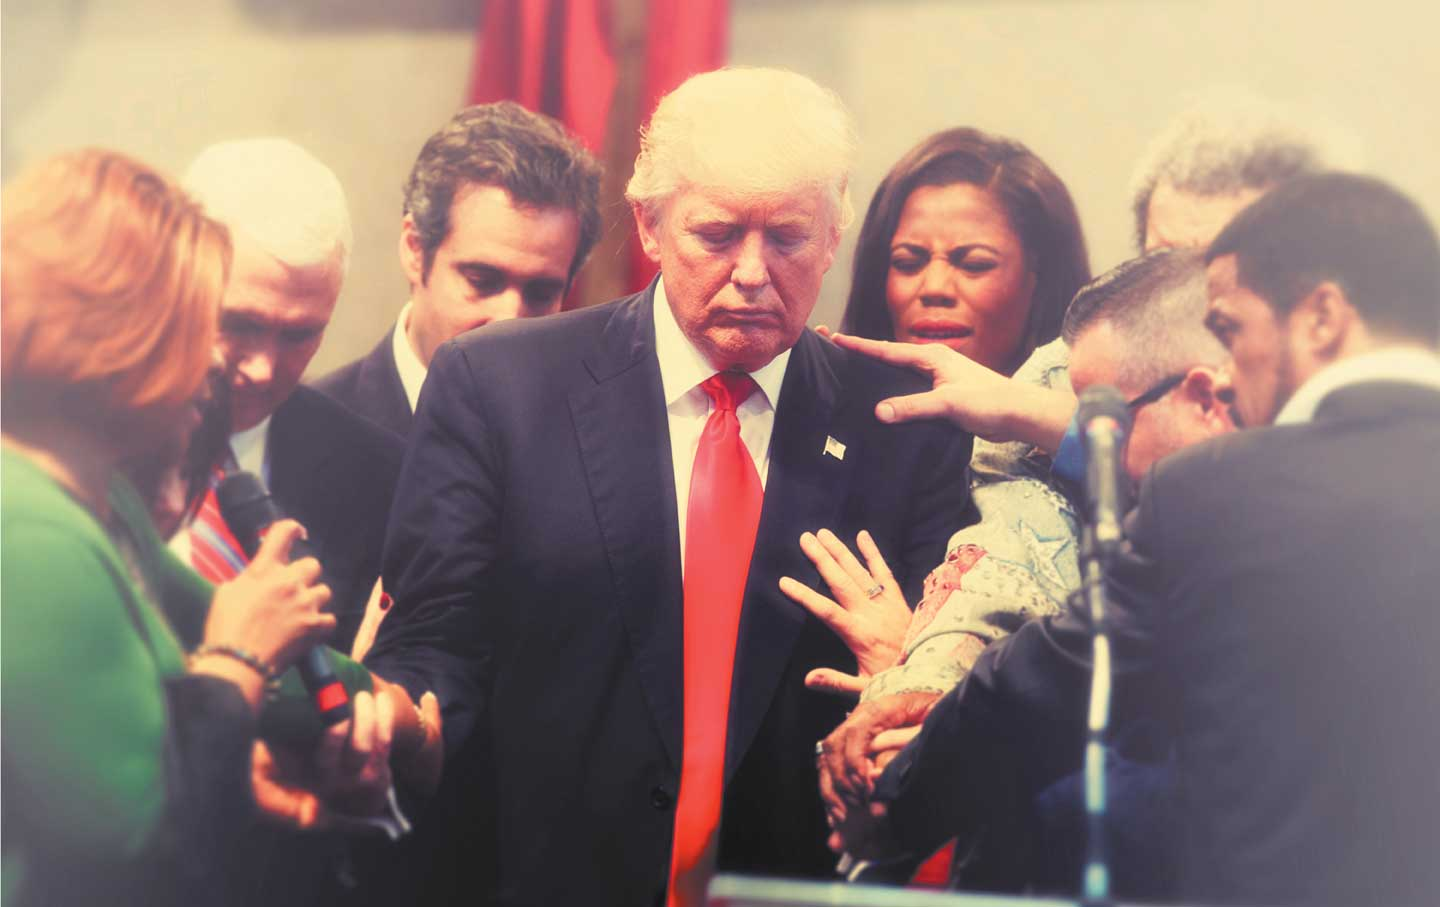 eb650ec06a6 Hands on  Worshippers pray with Donald Trump in Cleveland